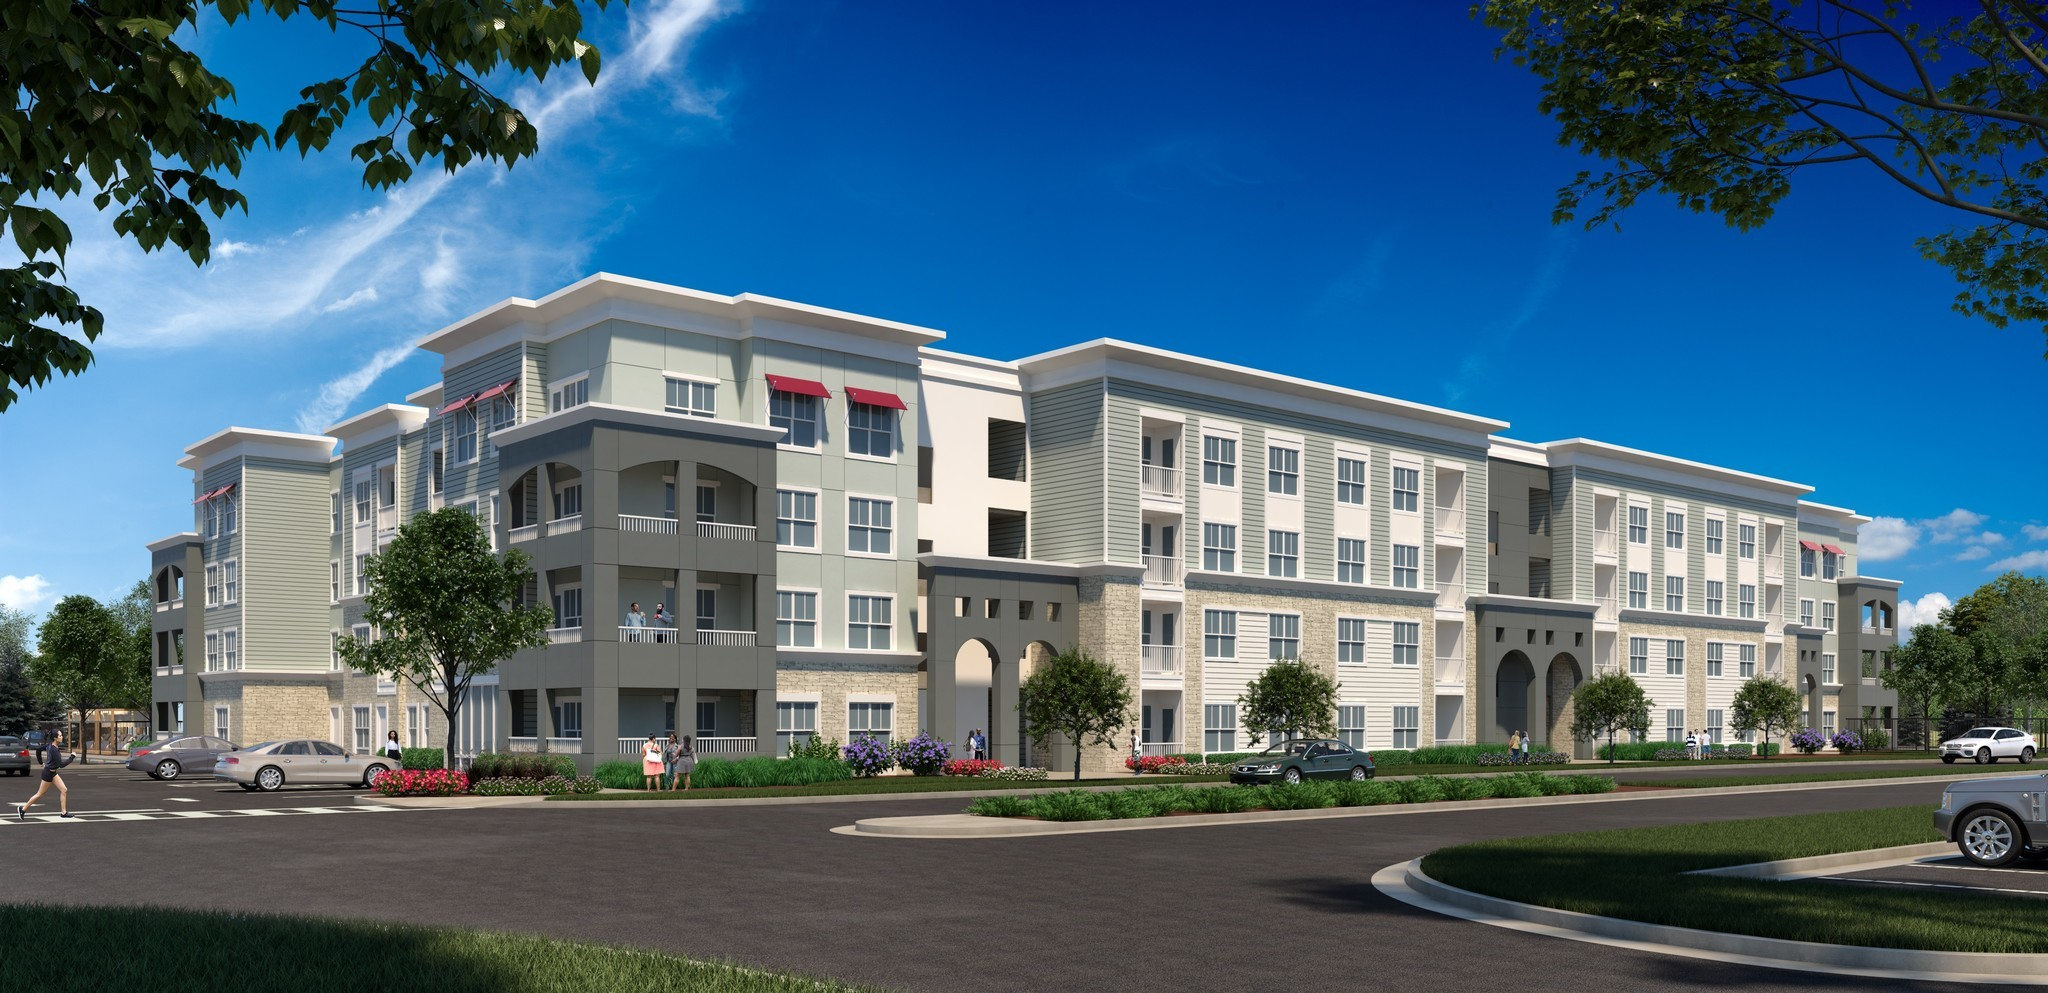 Watermark Under Contract For Multifamily Site Across From